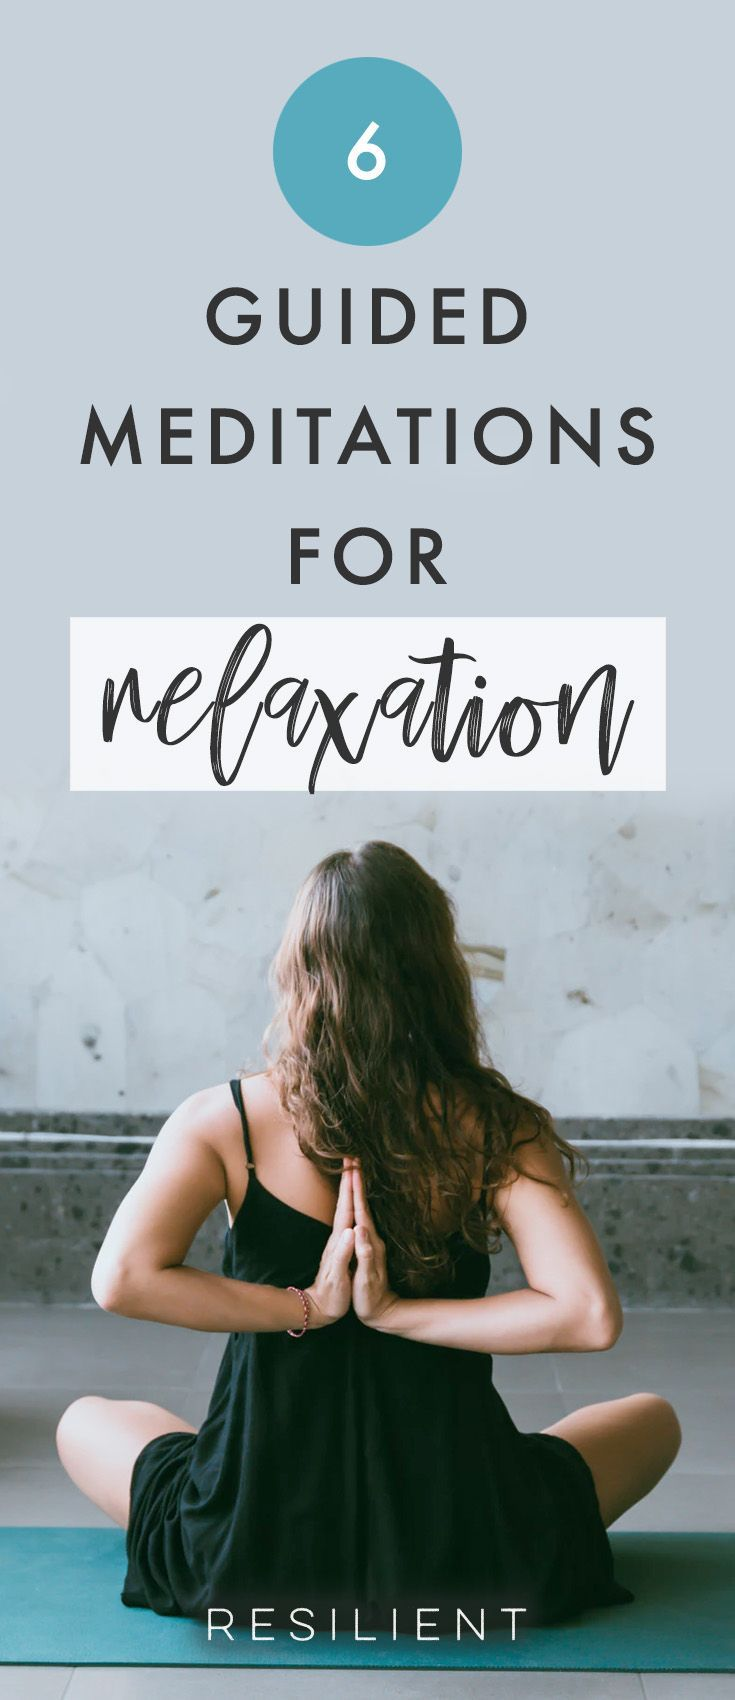 Guided meditations are a really powerful way to relax and de-stress from your day. Unlike regular me...